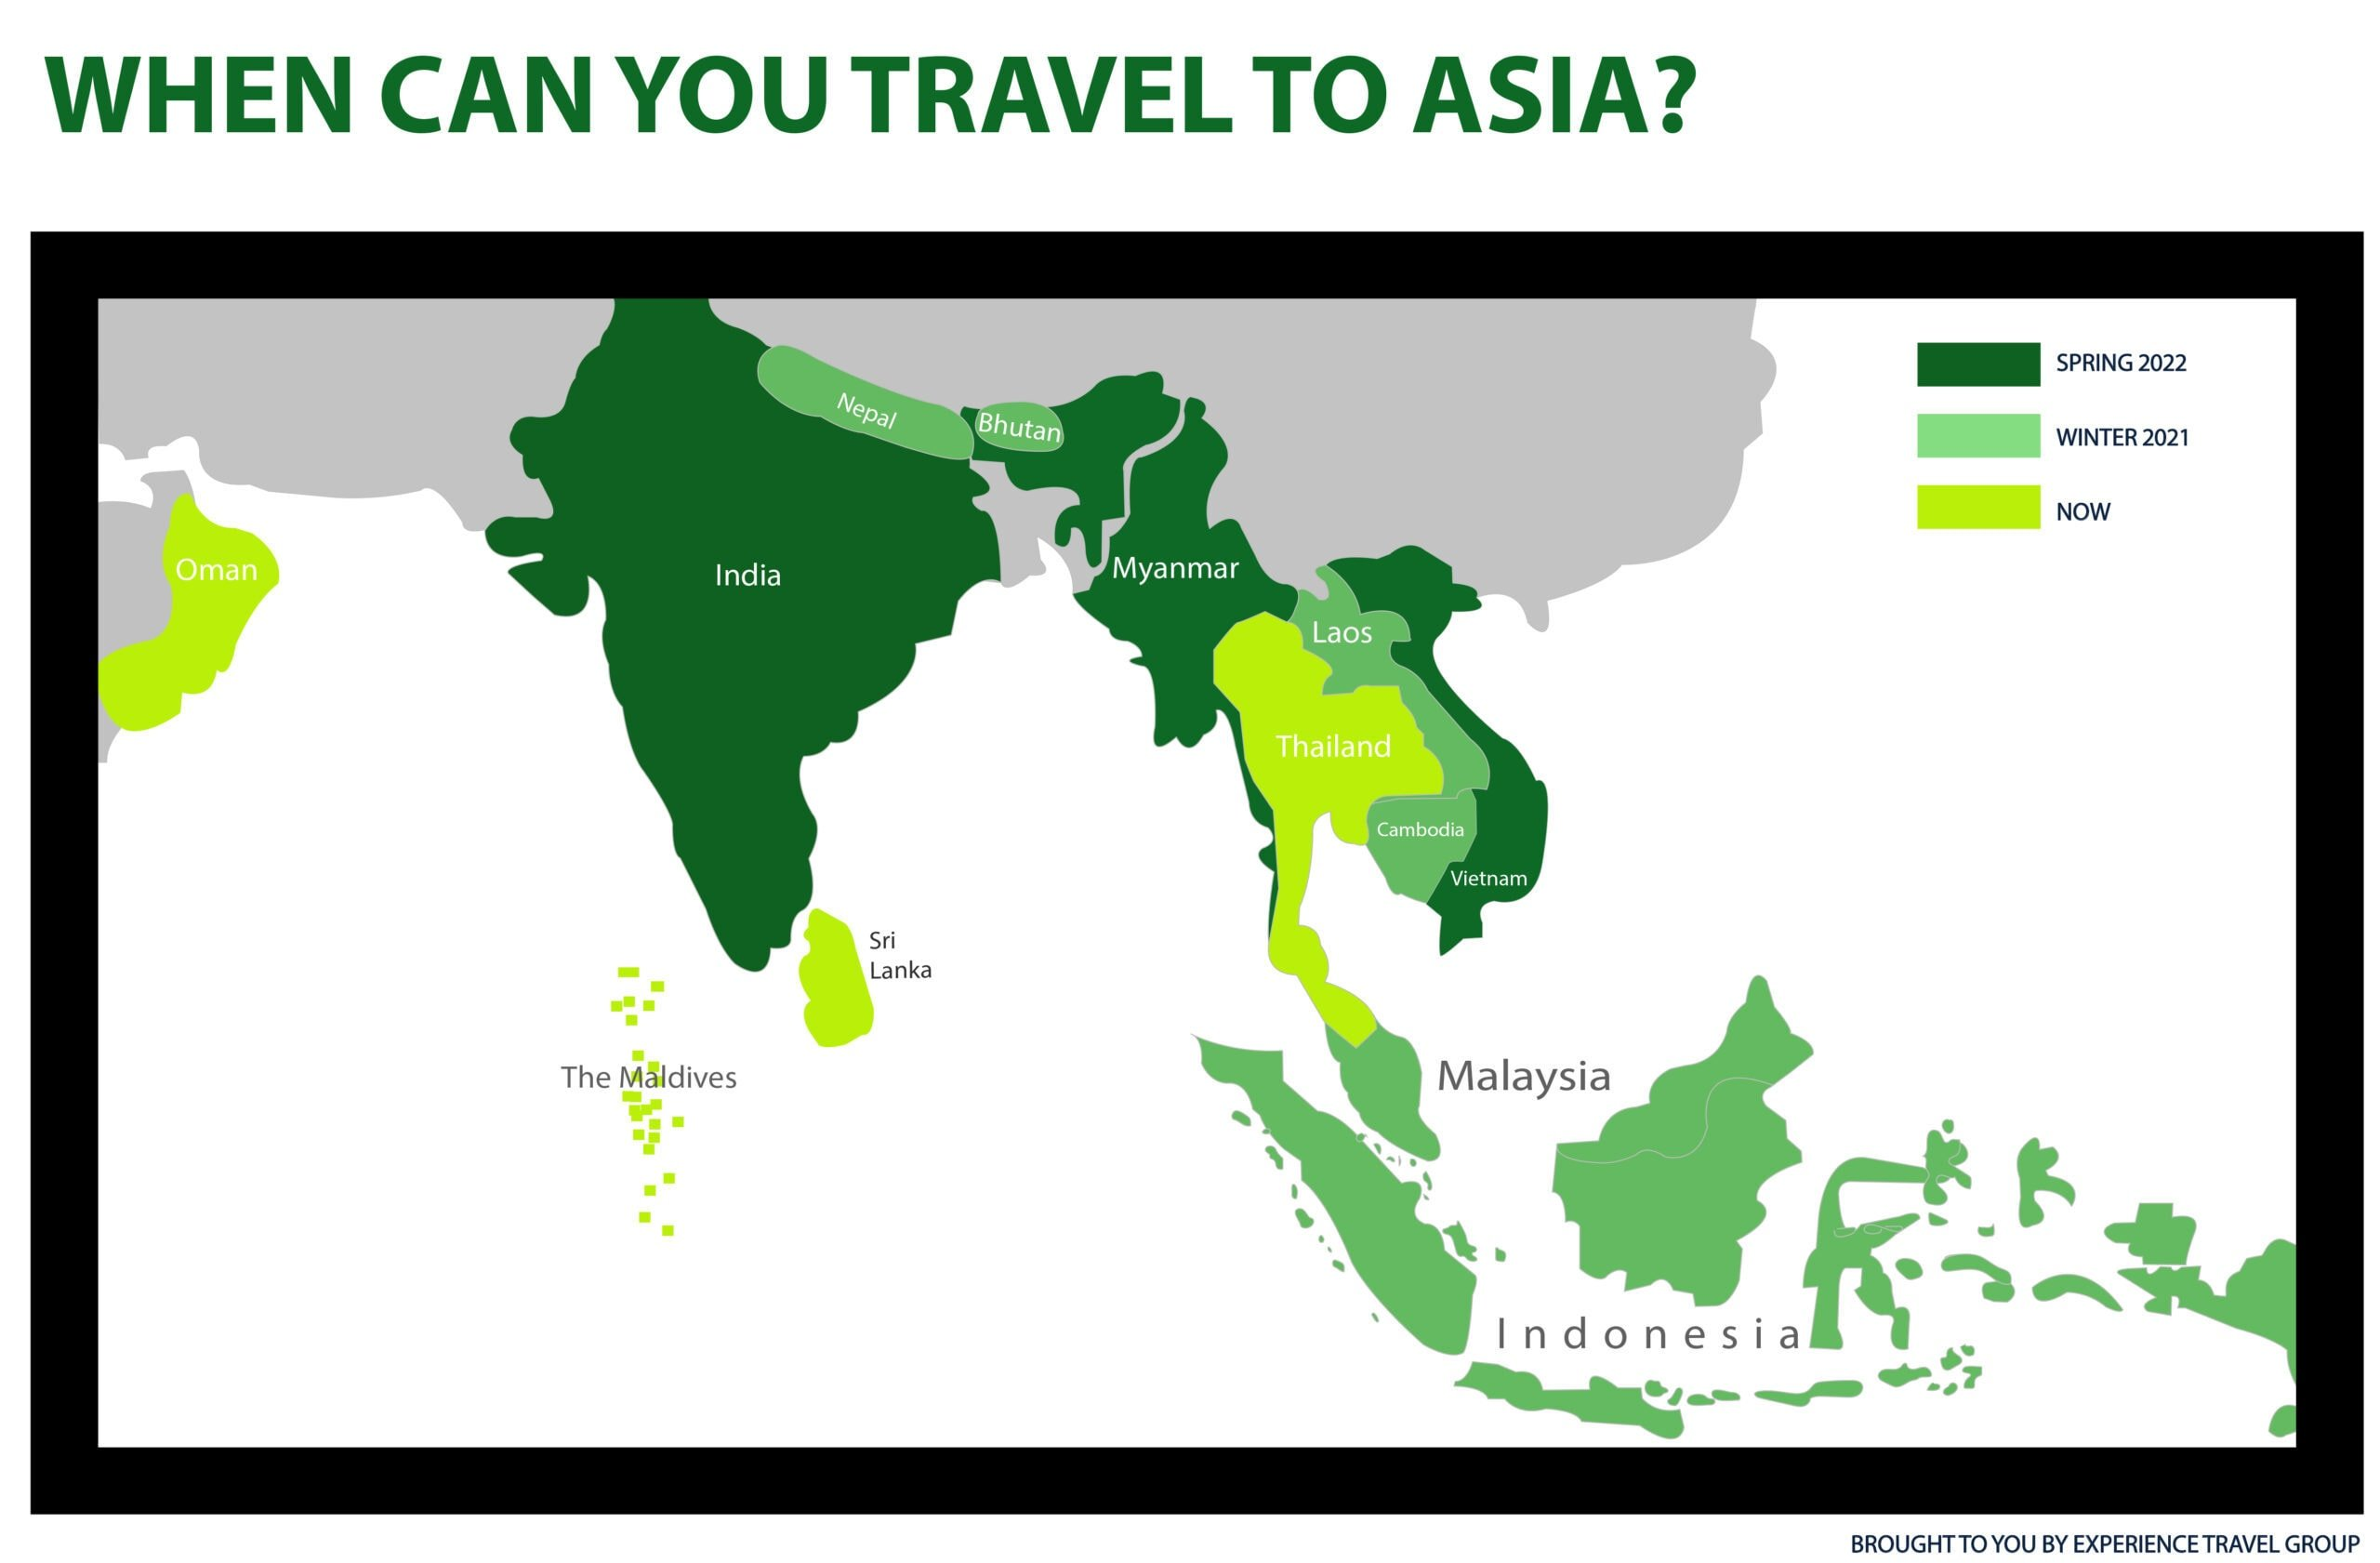 Map showing where you can travel in Asia based on covid 19 parameters